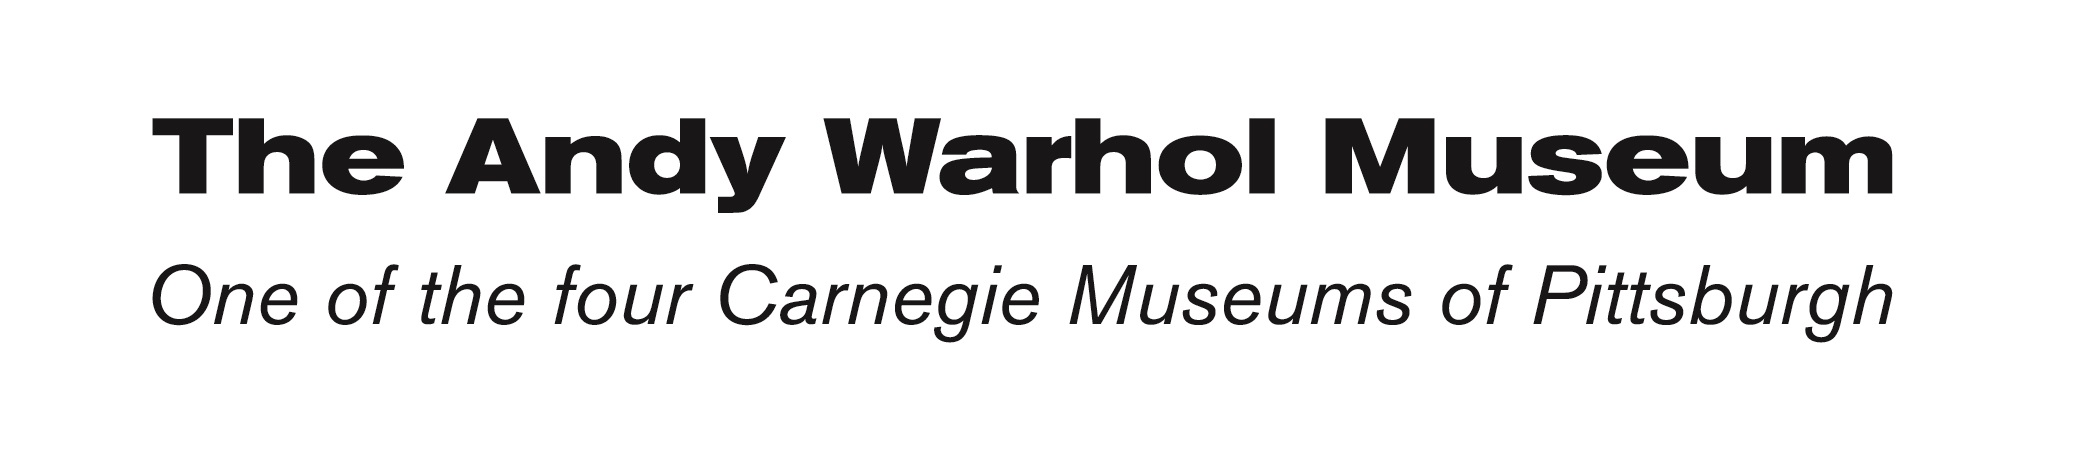 The Andy Warhol Museum, One of the four Carnegie Museums of Pittsburgh